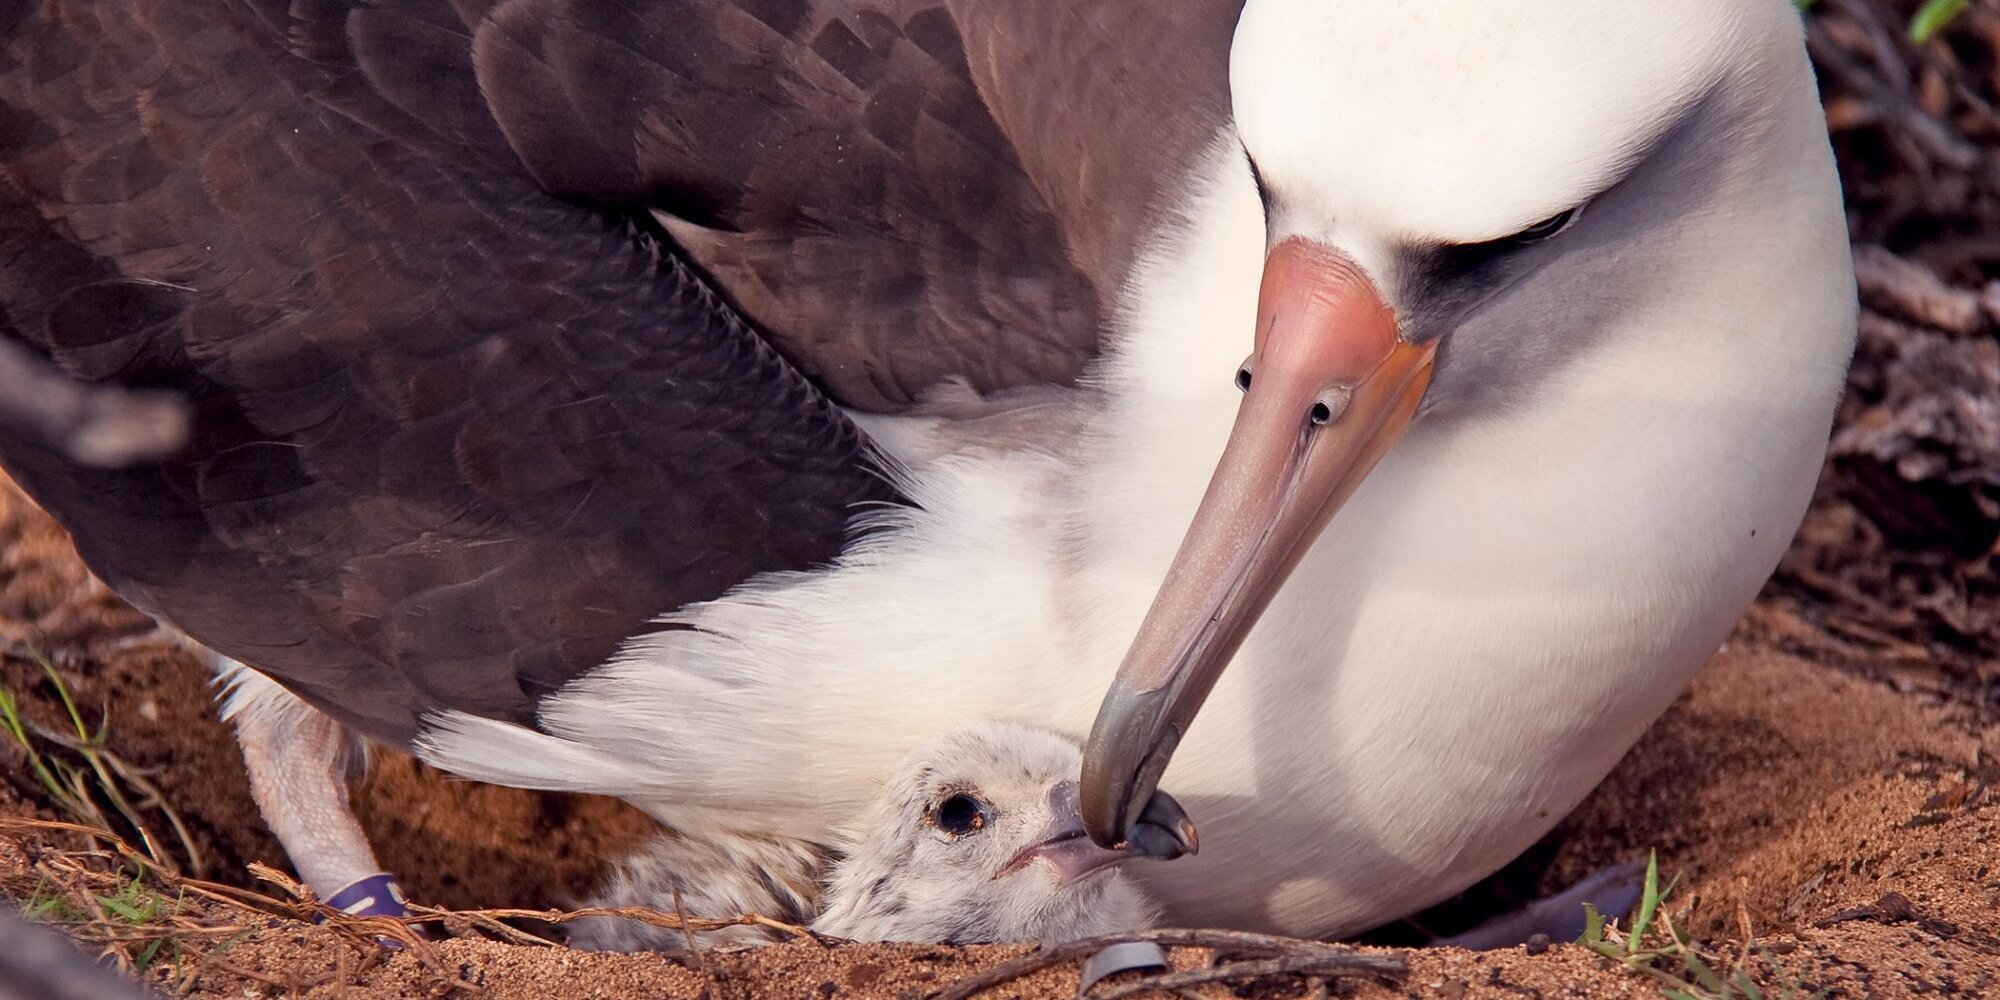 World's Oldest Known Wild Bird Hatches Another Chick… At Age 70!